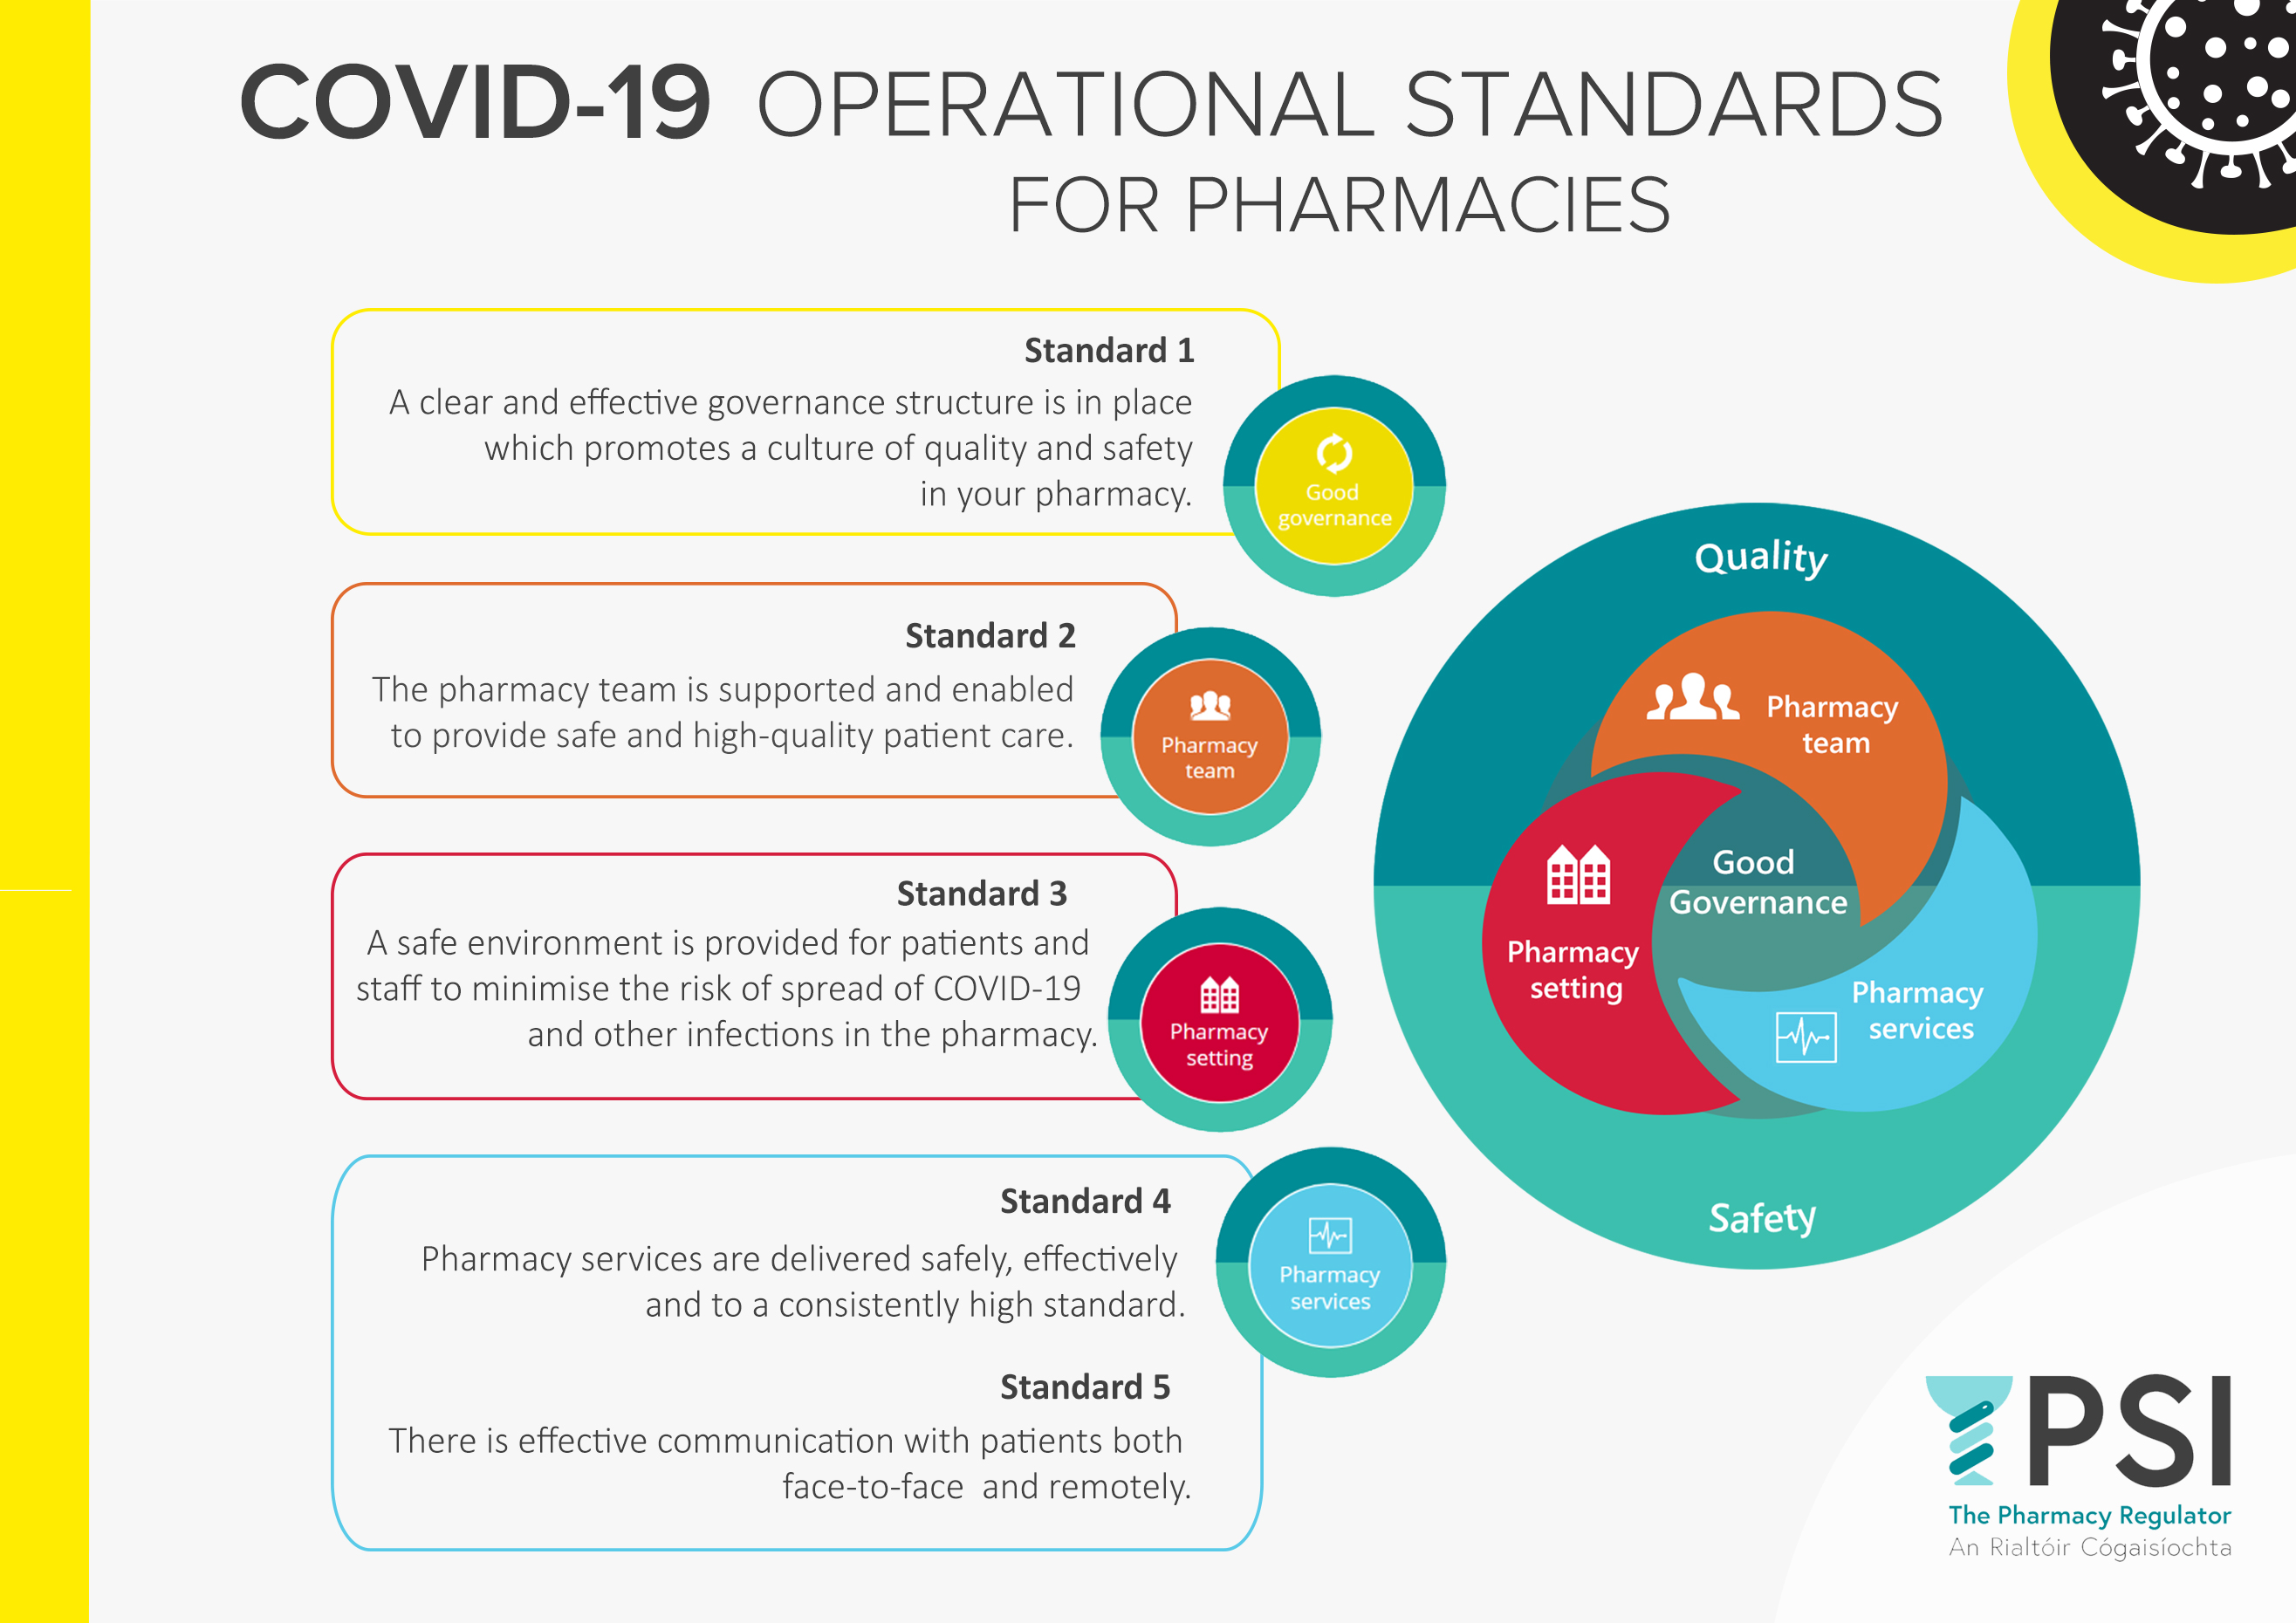 View the poster on the COVID-19 Operational Standards